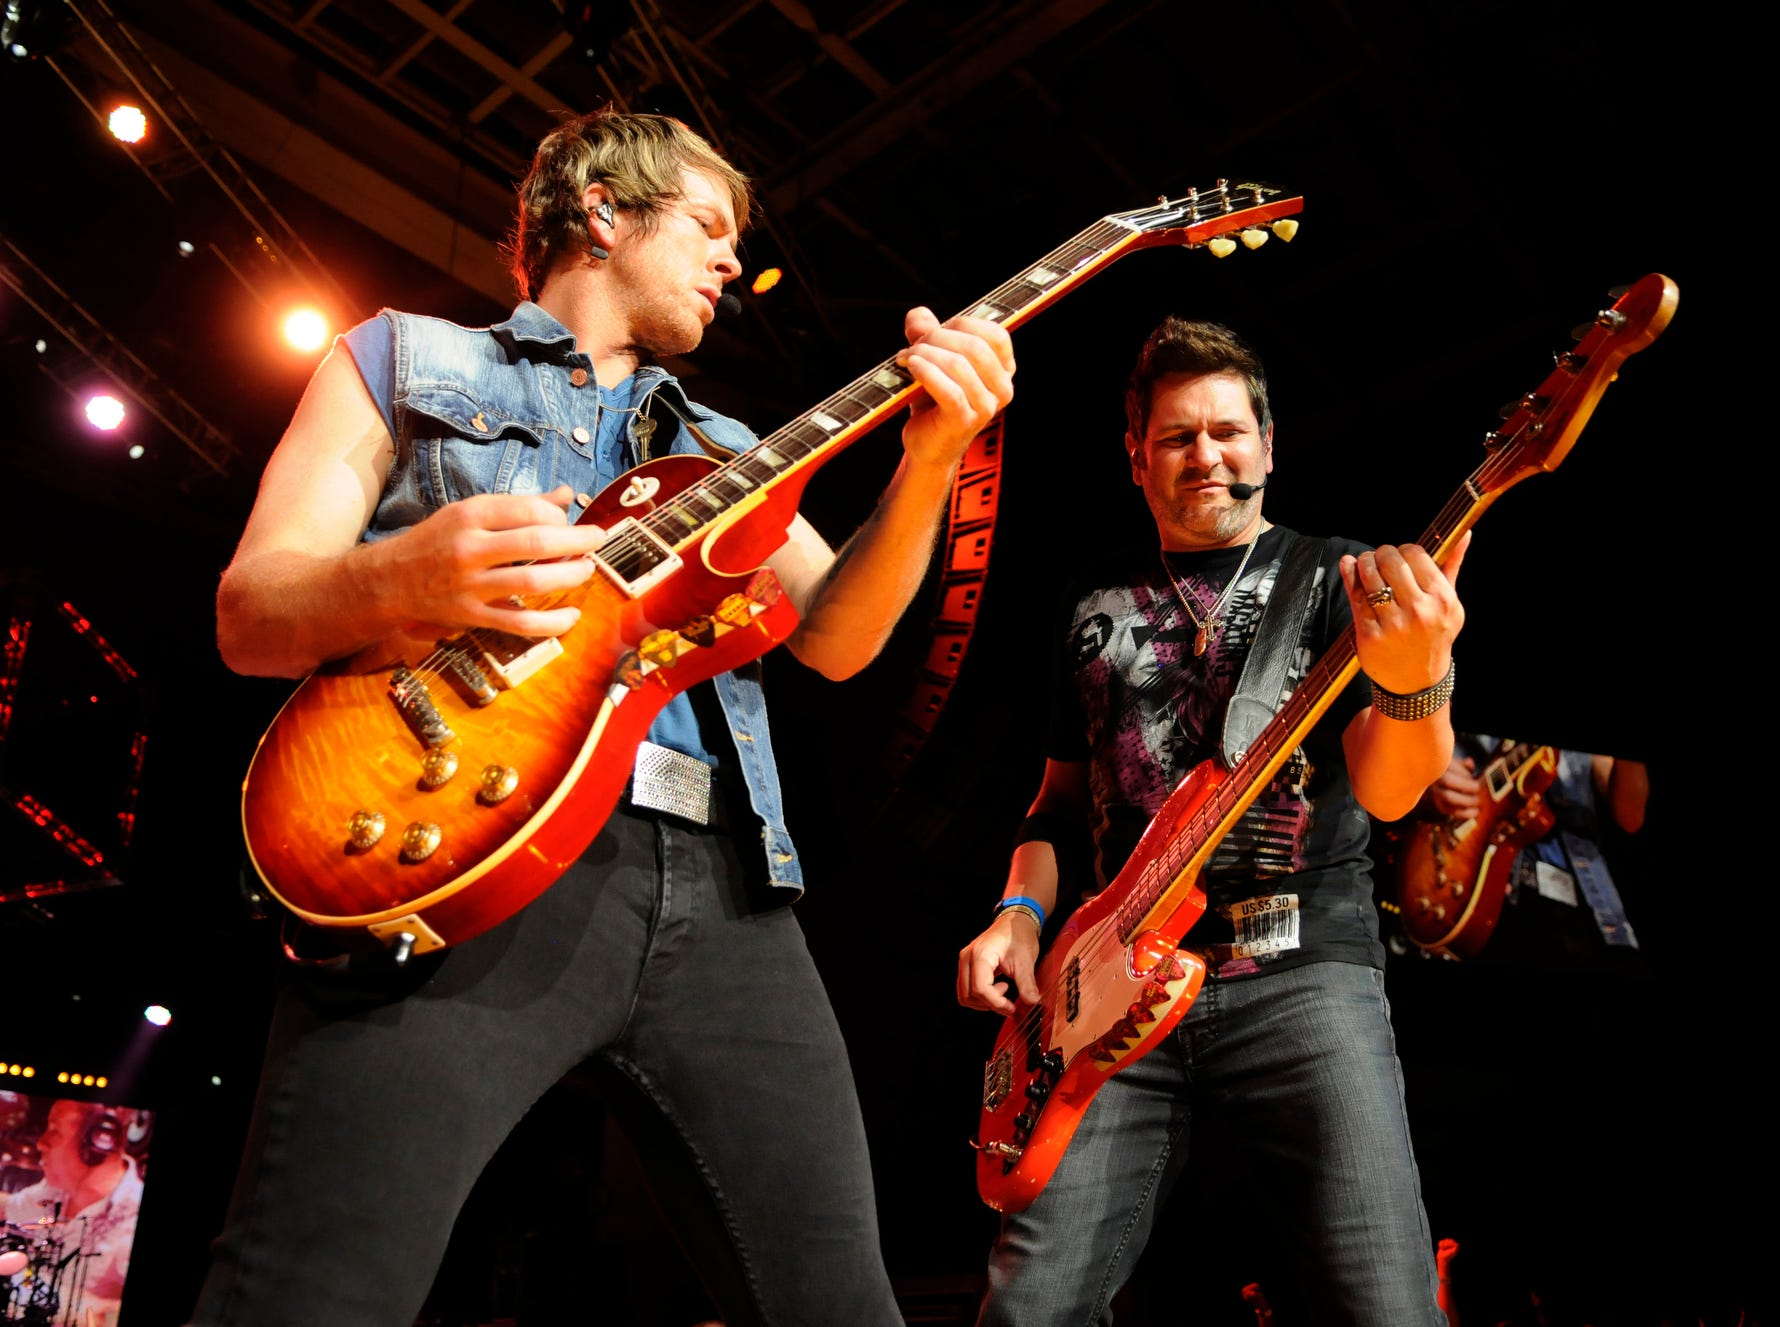 Rascal Flatts performs at Klipsch Music Center in Noblesville, Aug. 31, 2012.